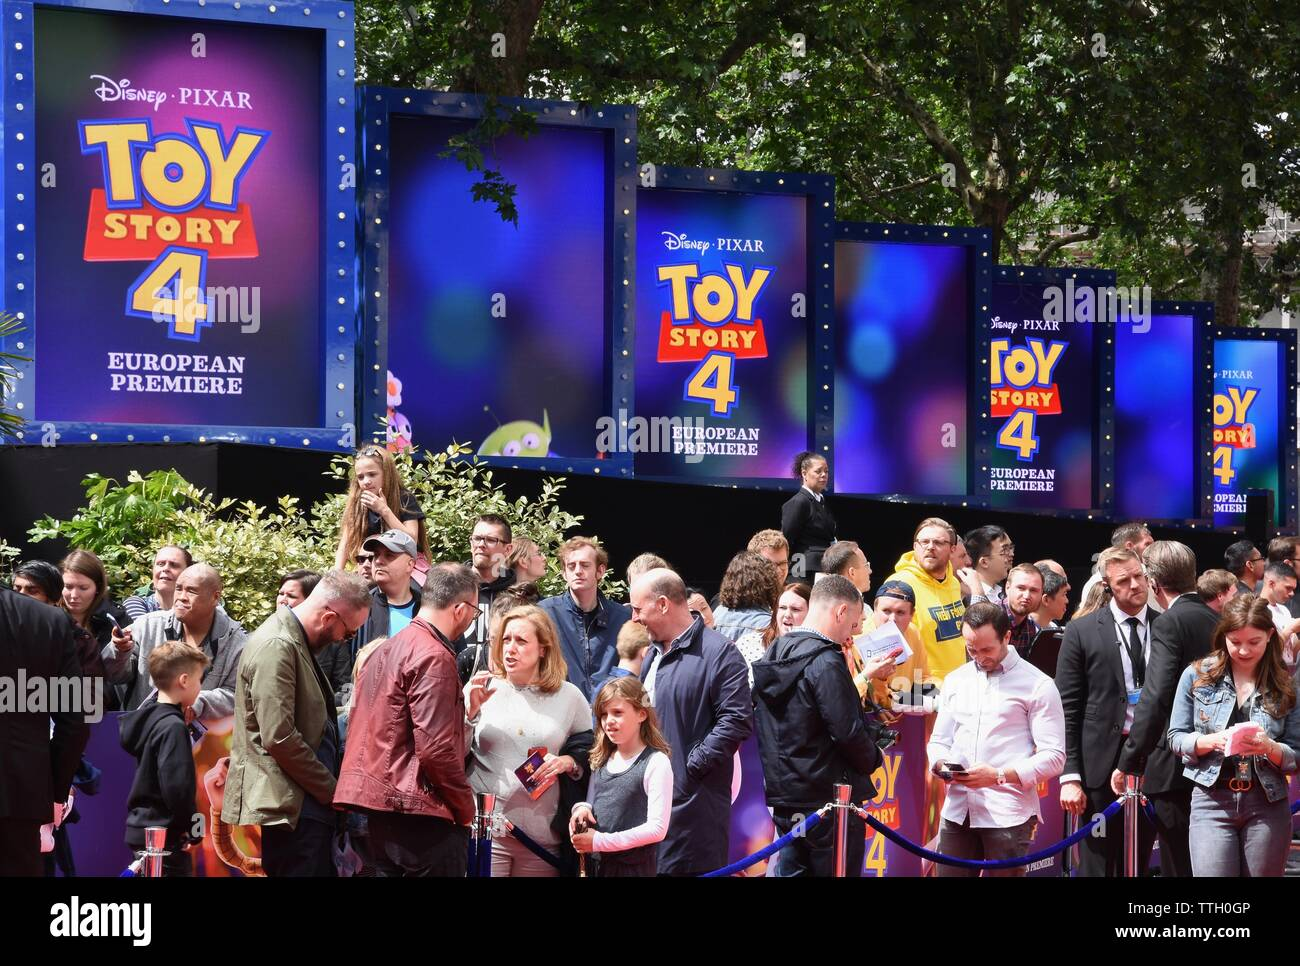 Atmosphere. Toy Story 4 European Premiere, Odeon Luxe, Leicester Square, London. UK - Stock Image